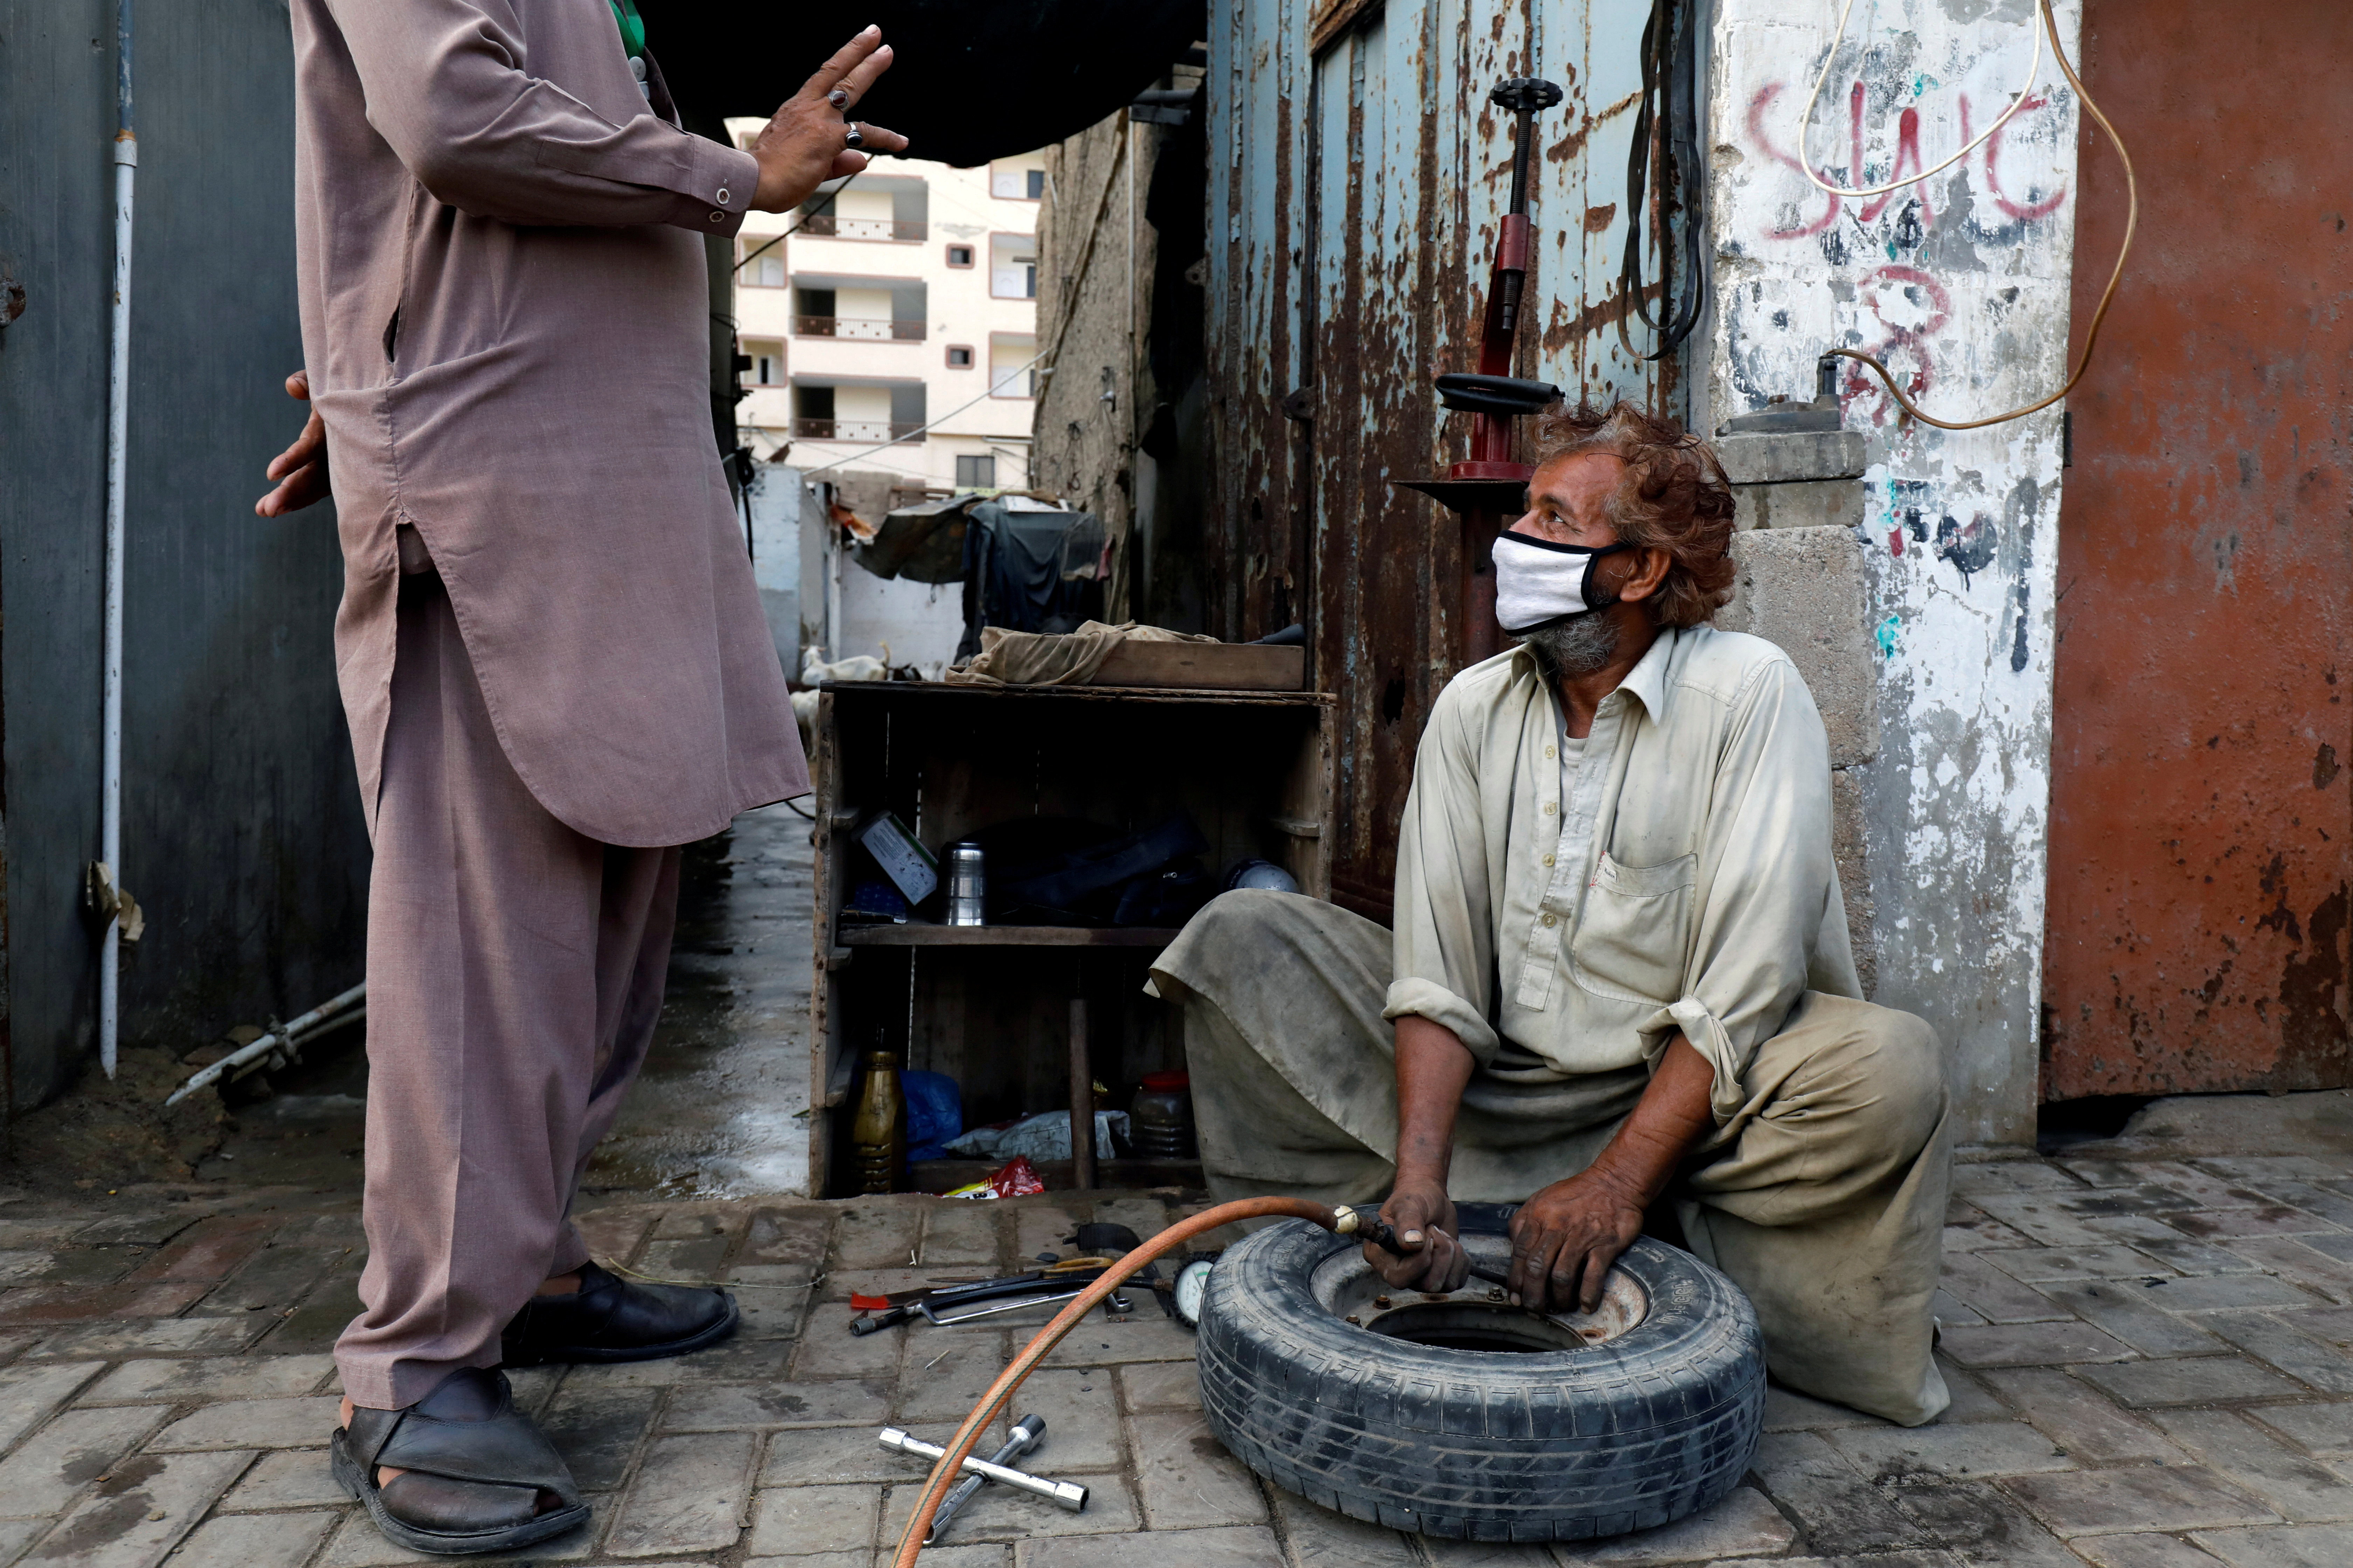 A labourer wearing protective face mask fills air in a tyre at a workshop along a road.